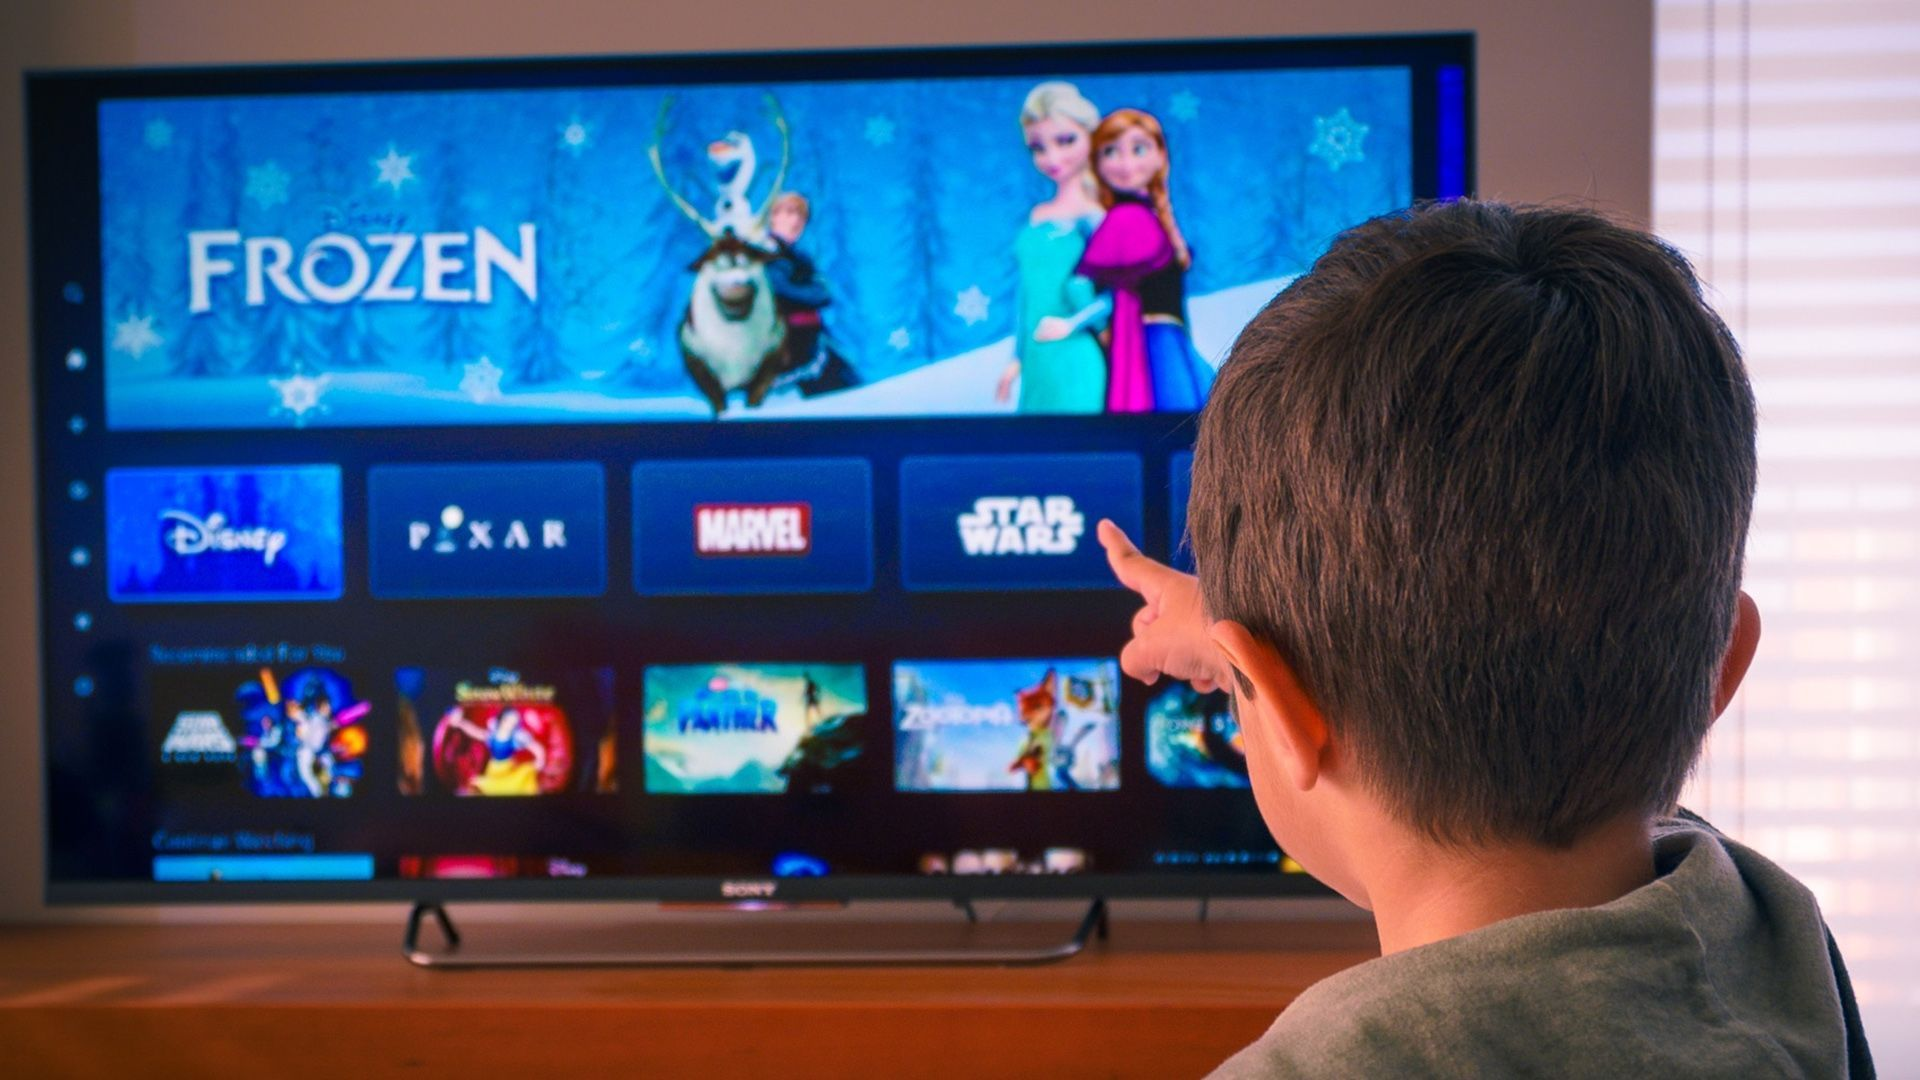 Only a handful of Smart TVs have Disney+ apps at the